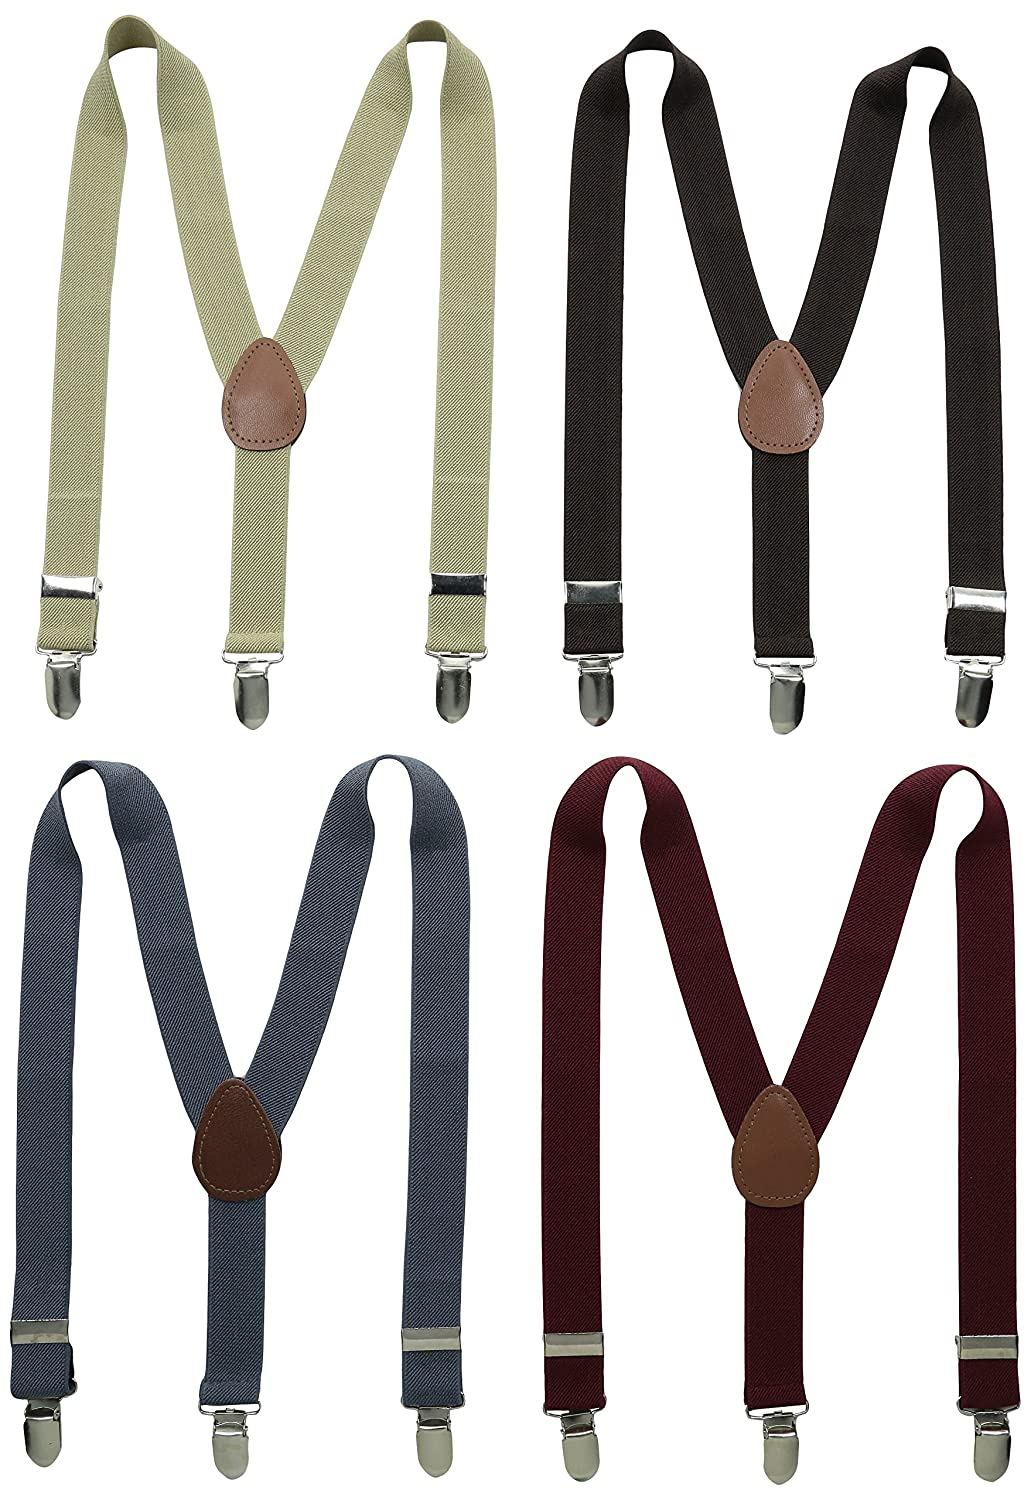 Bundle Monster 4 Pack Variety Easy Clip-On Suspenders for Kids & Toddlers w/Premium 1-Inch Adjustable Straps Y-Back Stretchy Polyester Skinny for Boys & Girls - Black, Khaki, Blue, Red